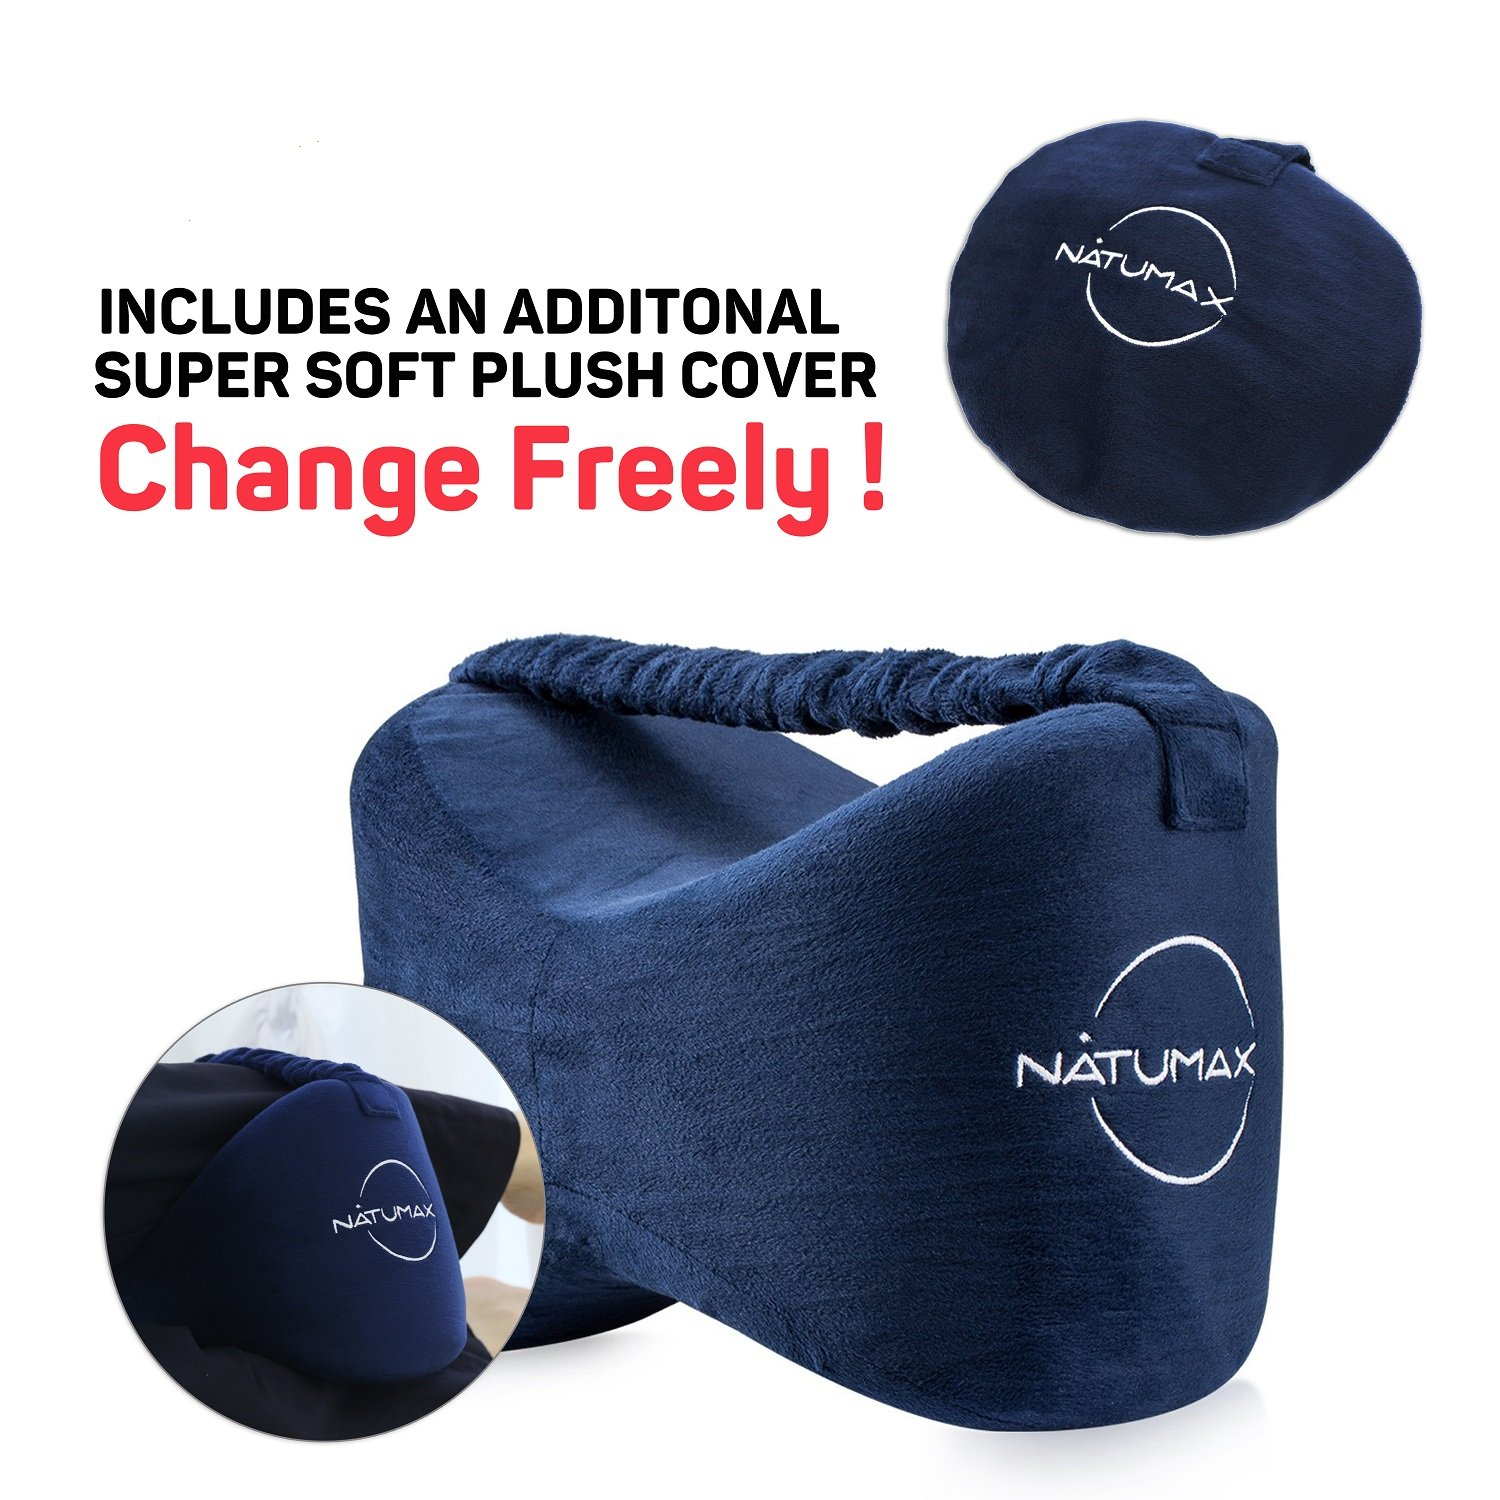 NATUMAX Knee Pillow for Side Sleepers - Sciatica Pain Relief - Back Pain, Leg Pain, Pregnancy, Hip and Joint Pain Memory Foam Leg Pillow with Washable Cover + Free Sleep Mask and Ear Plugs by NATUMAX (Image #2)